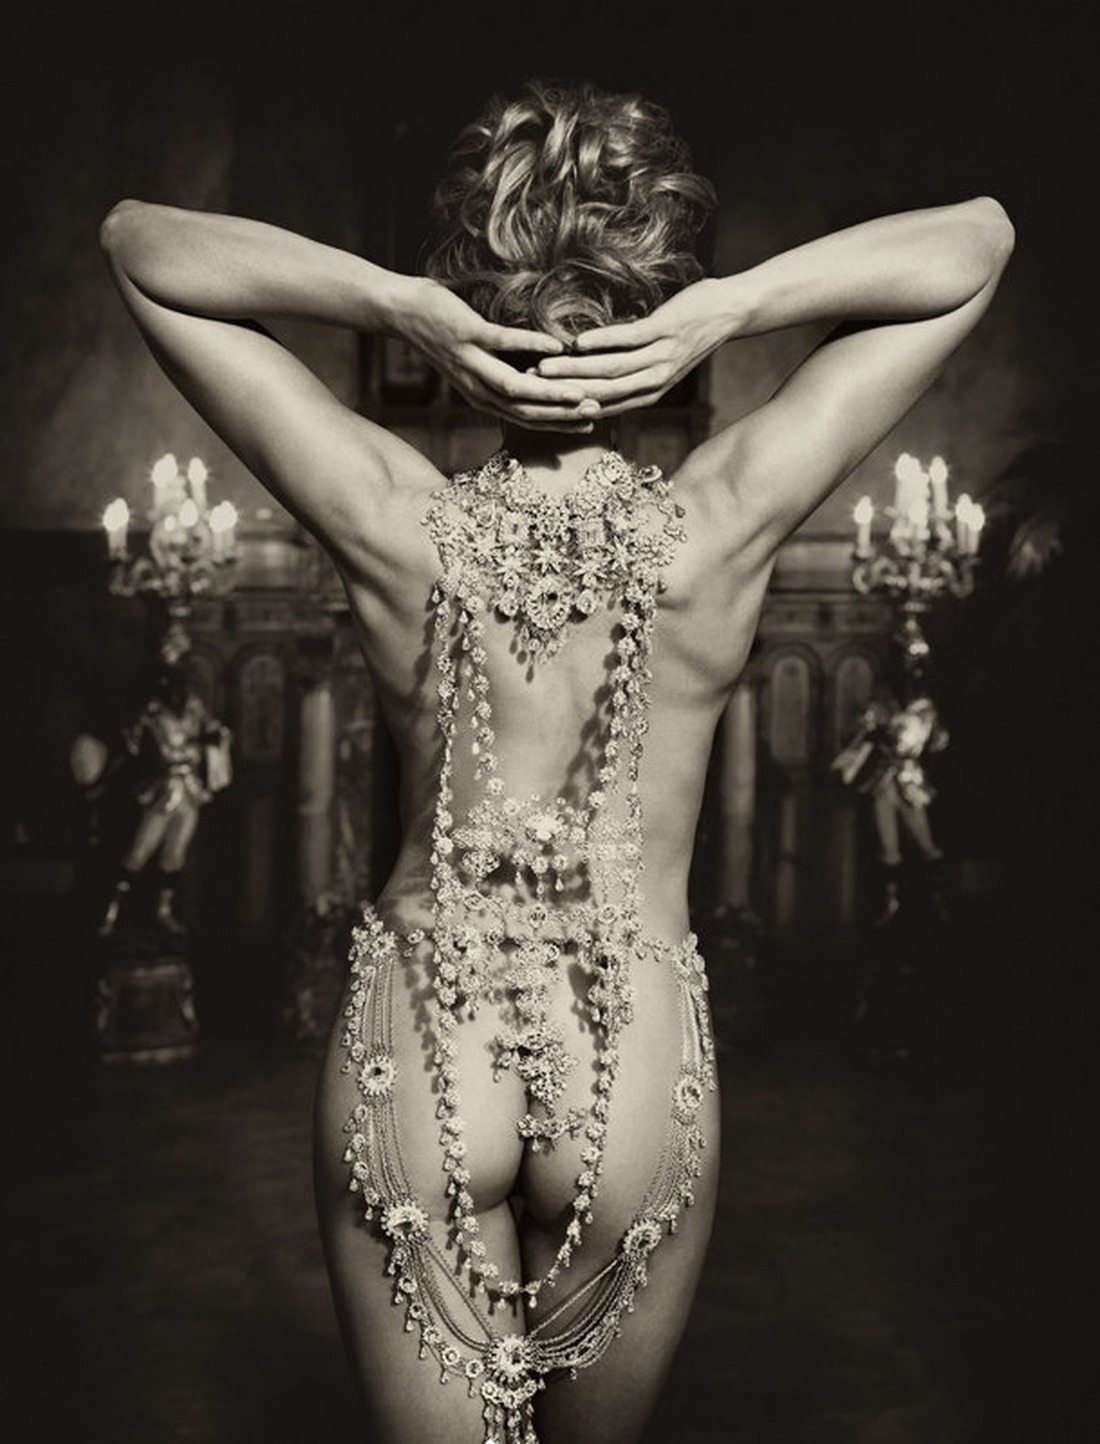 photo by Marc Lagrange